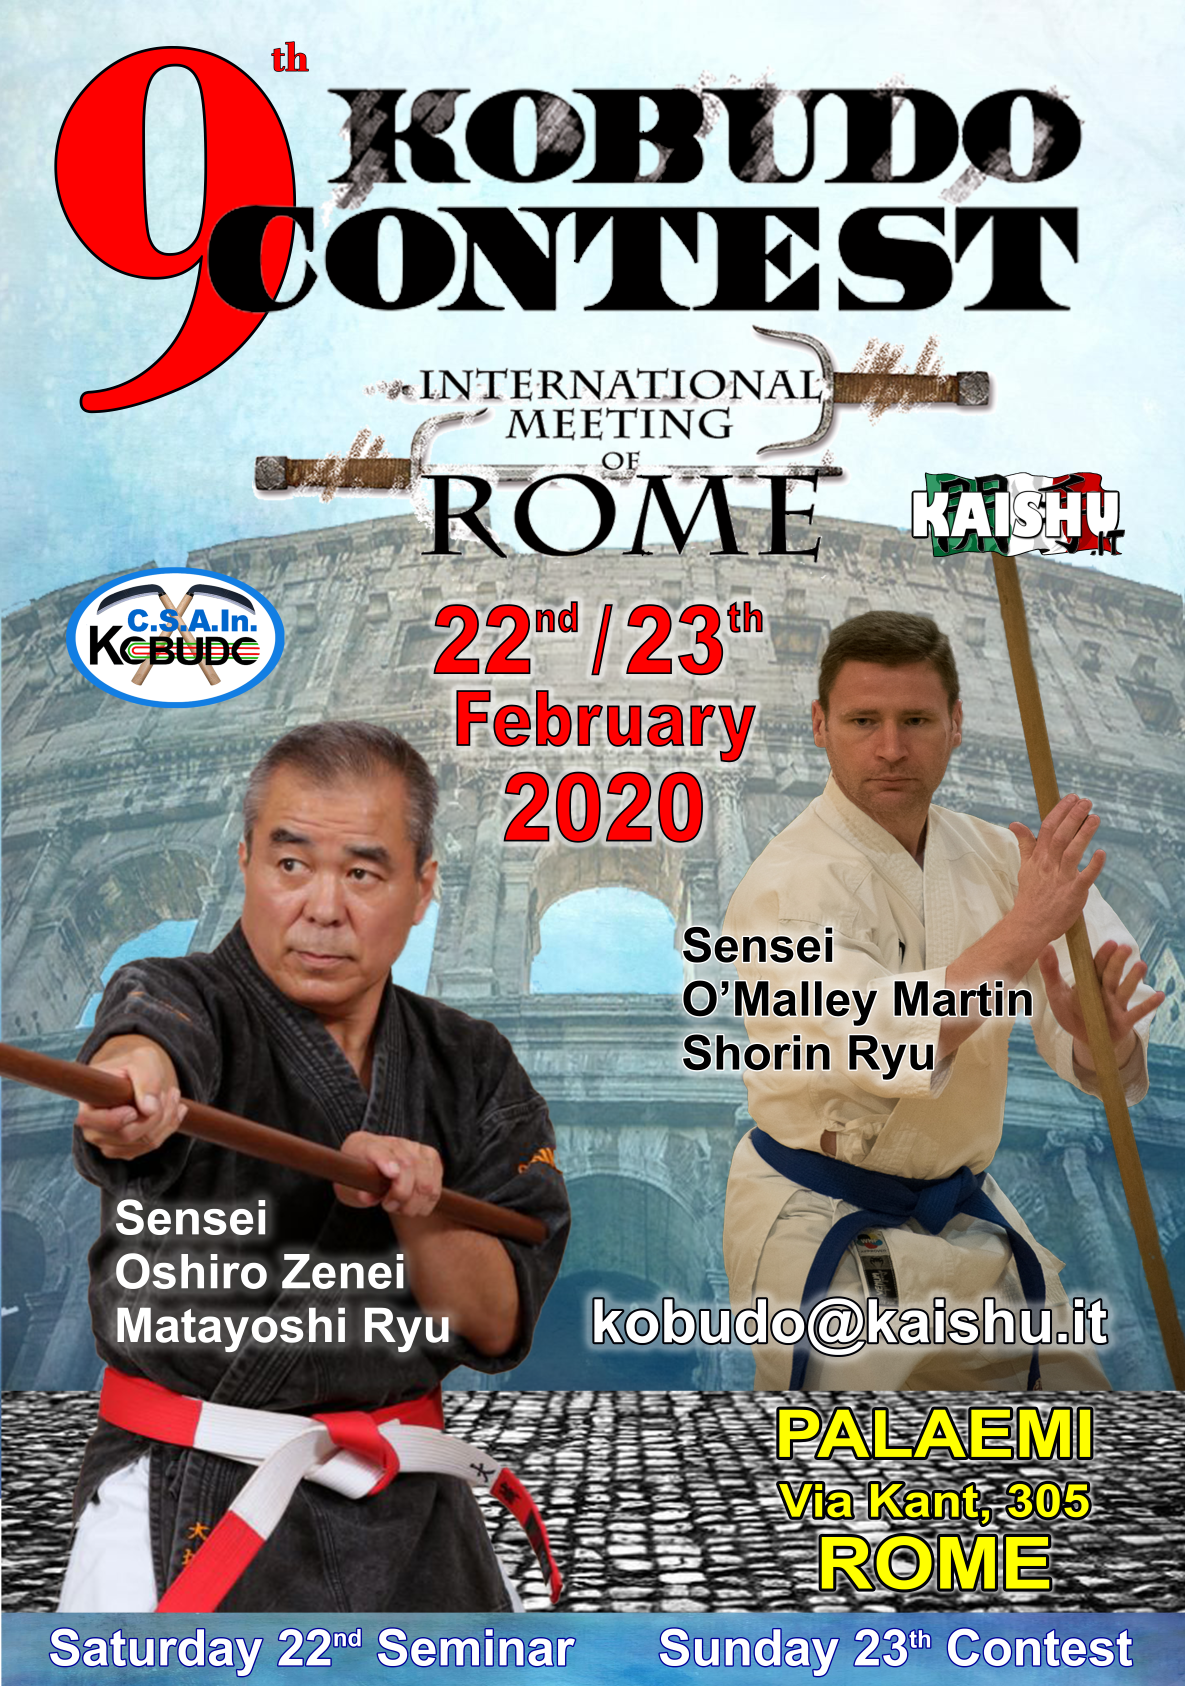 9th kobudo meeting leaflet.png - 2.68 Mb